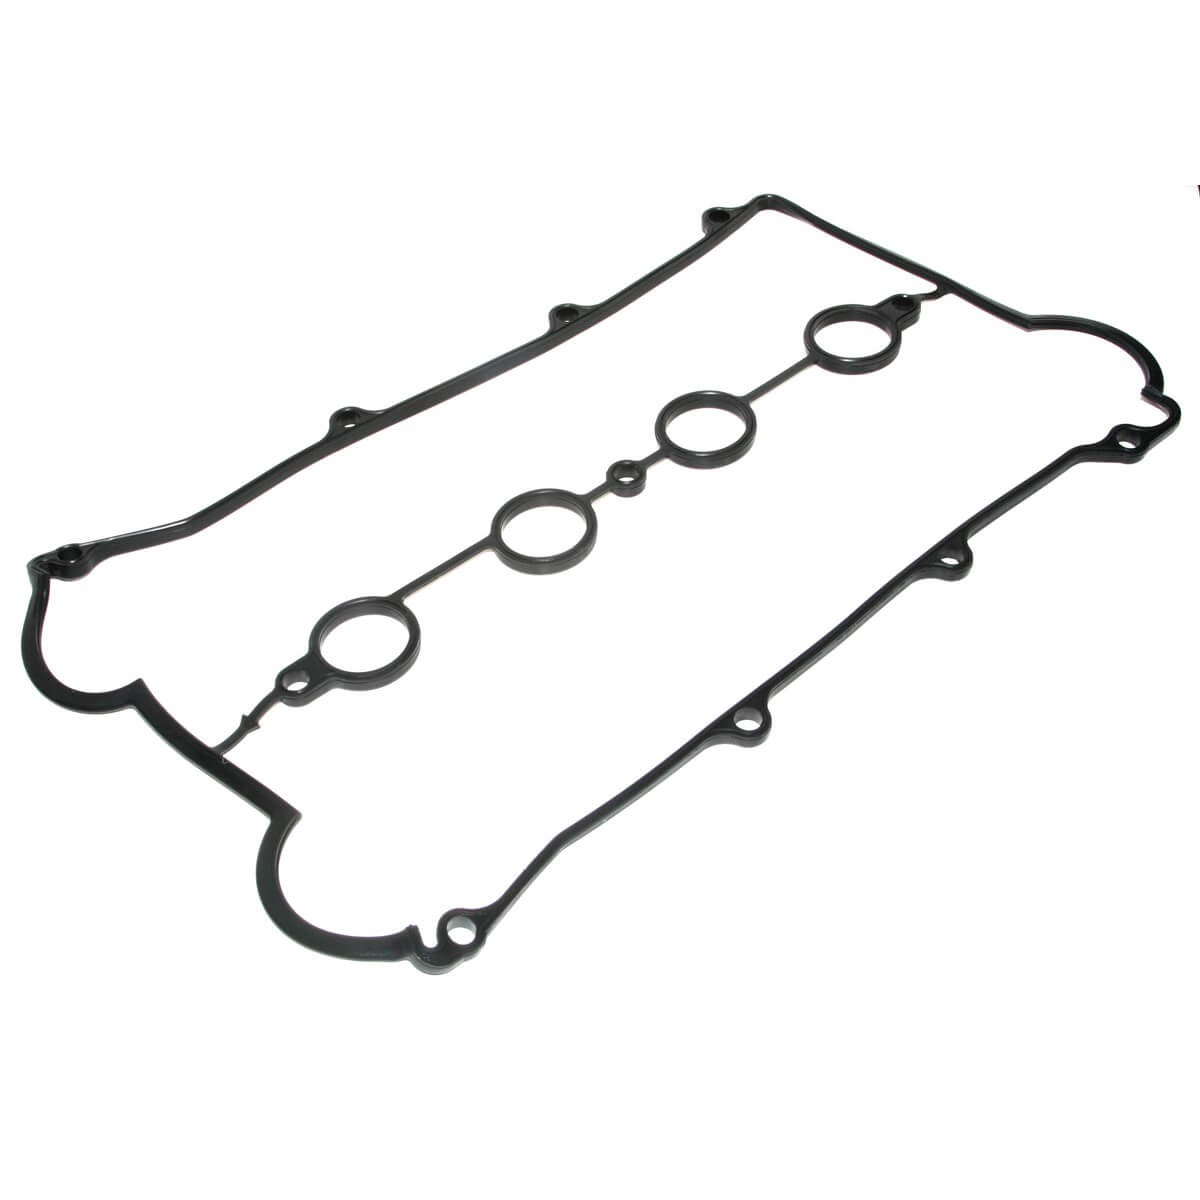 971 030 Valve Cover Gasket